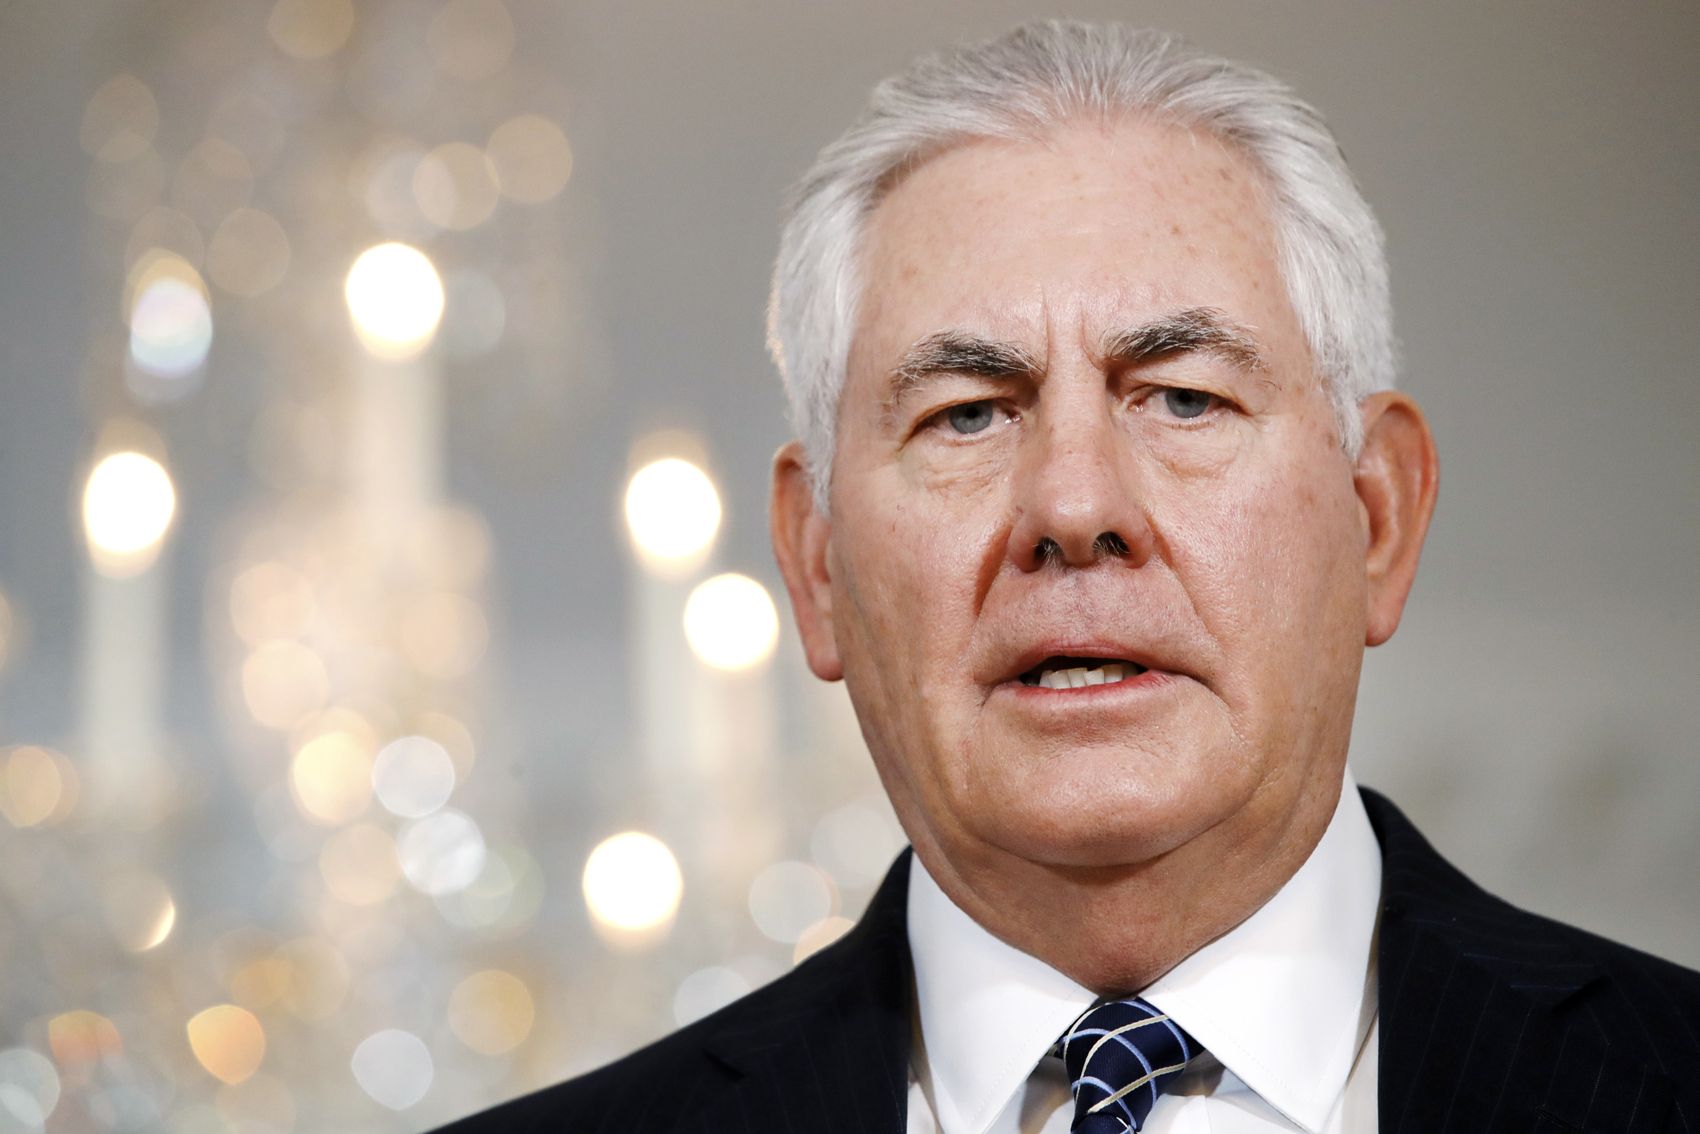 Trump weighs plan to replace Tillerson with CIA's Pompeo